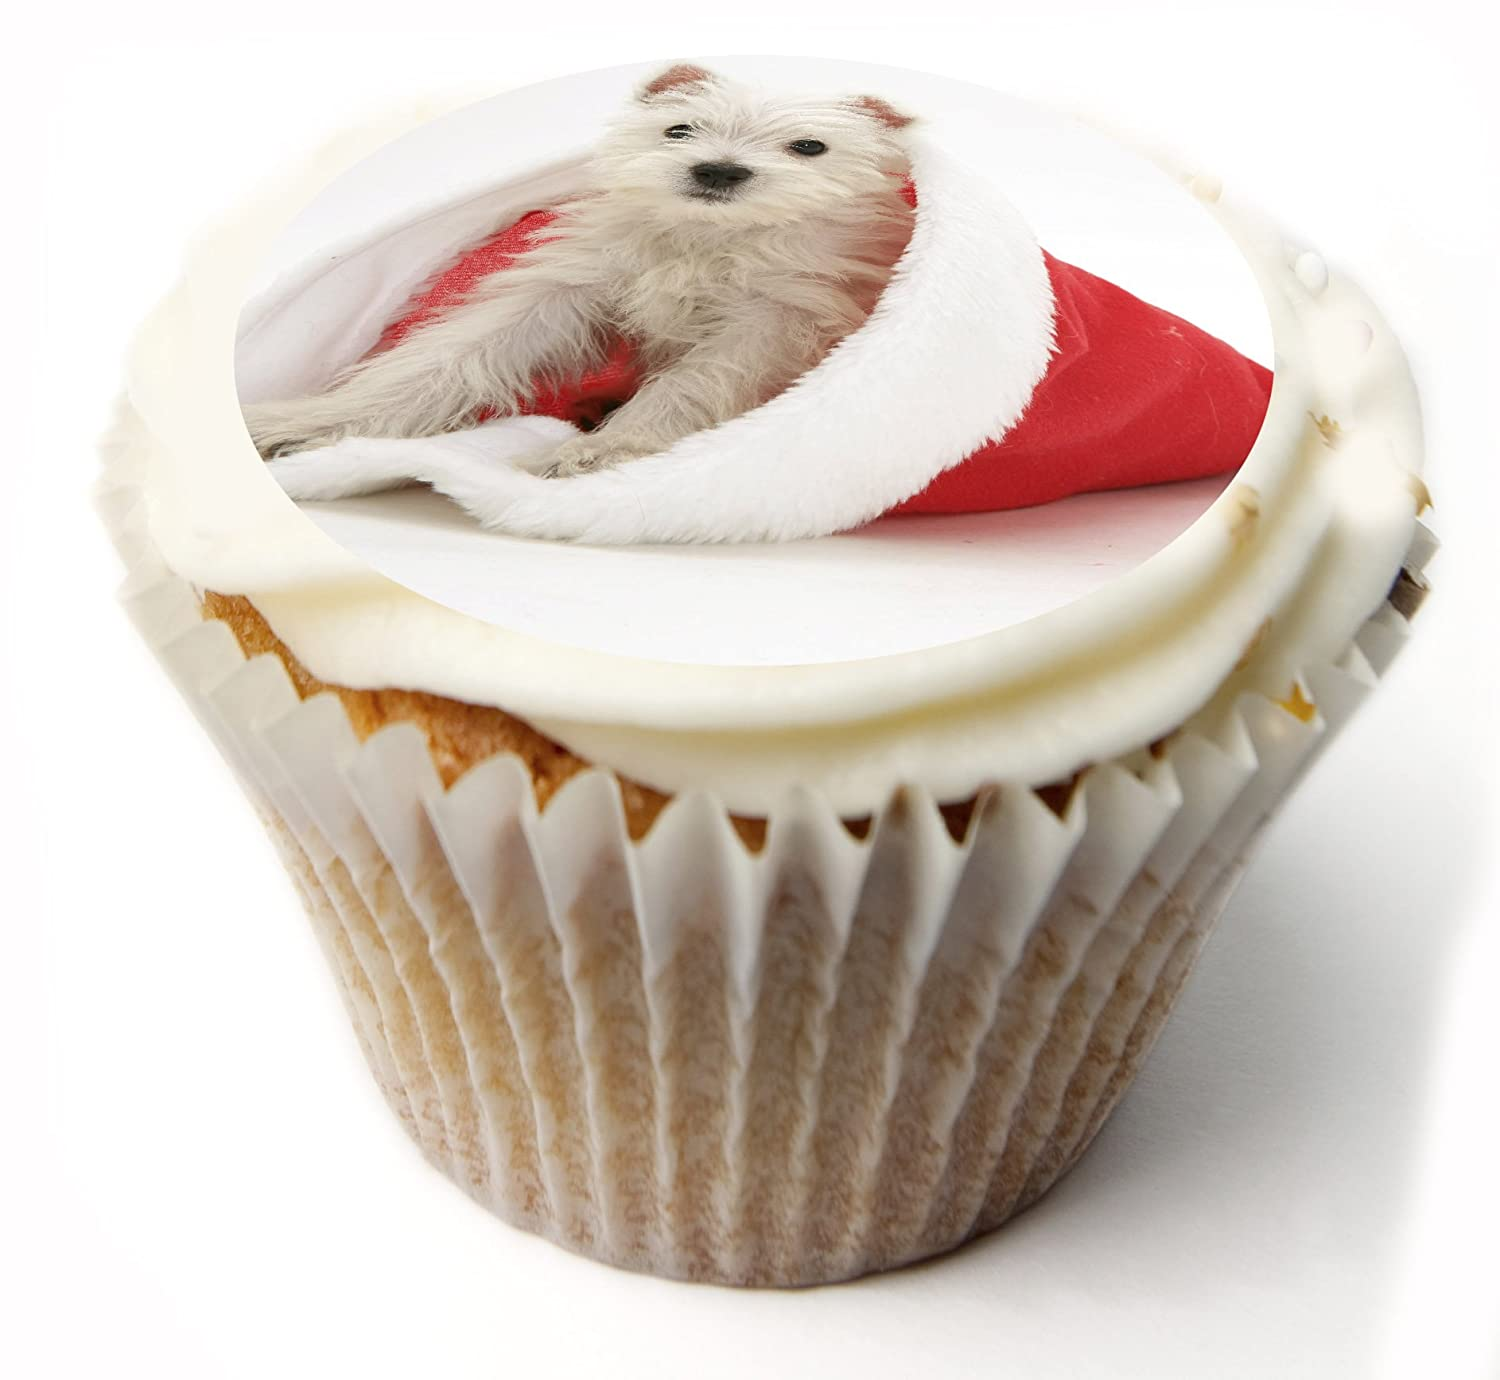 Christmas Cupcake Toppers Westie Dog Merry Christmas Fairy Cake Toppers Muffin Cake Toppers PRE CUT Edible Icing Frosting Sheet or Rice paper Wafer. x 20 PRE CUT 1.75 Inch. Ideal for Christmas party, Christmas cake, Christmas decoration etc